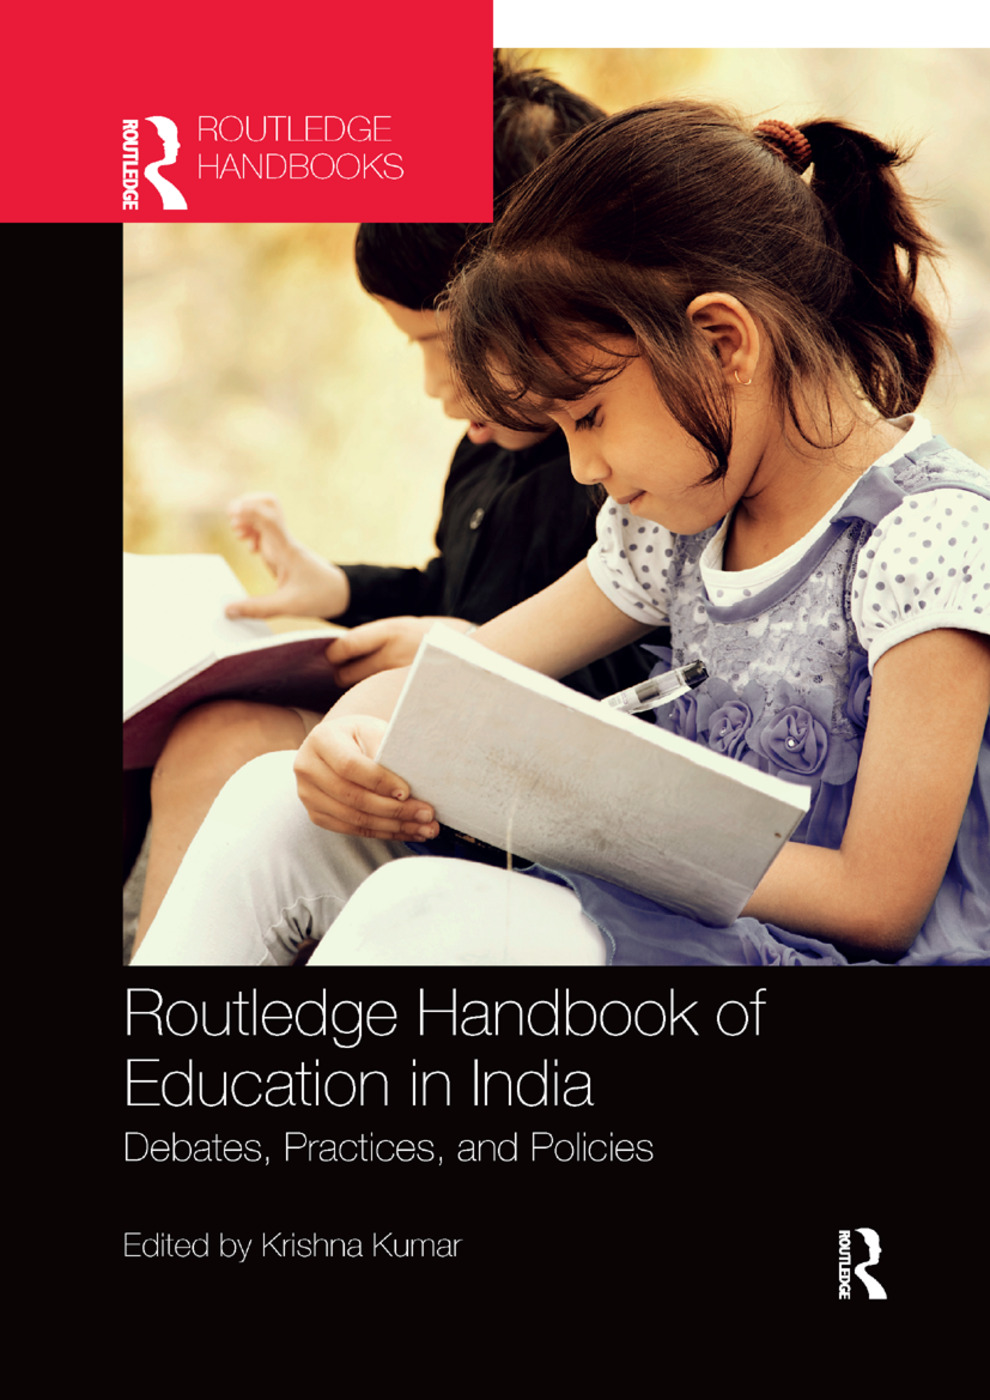 Routledge Handbook of Education in India: Debates, Practices, and Policies book cover